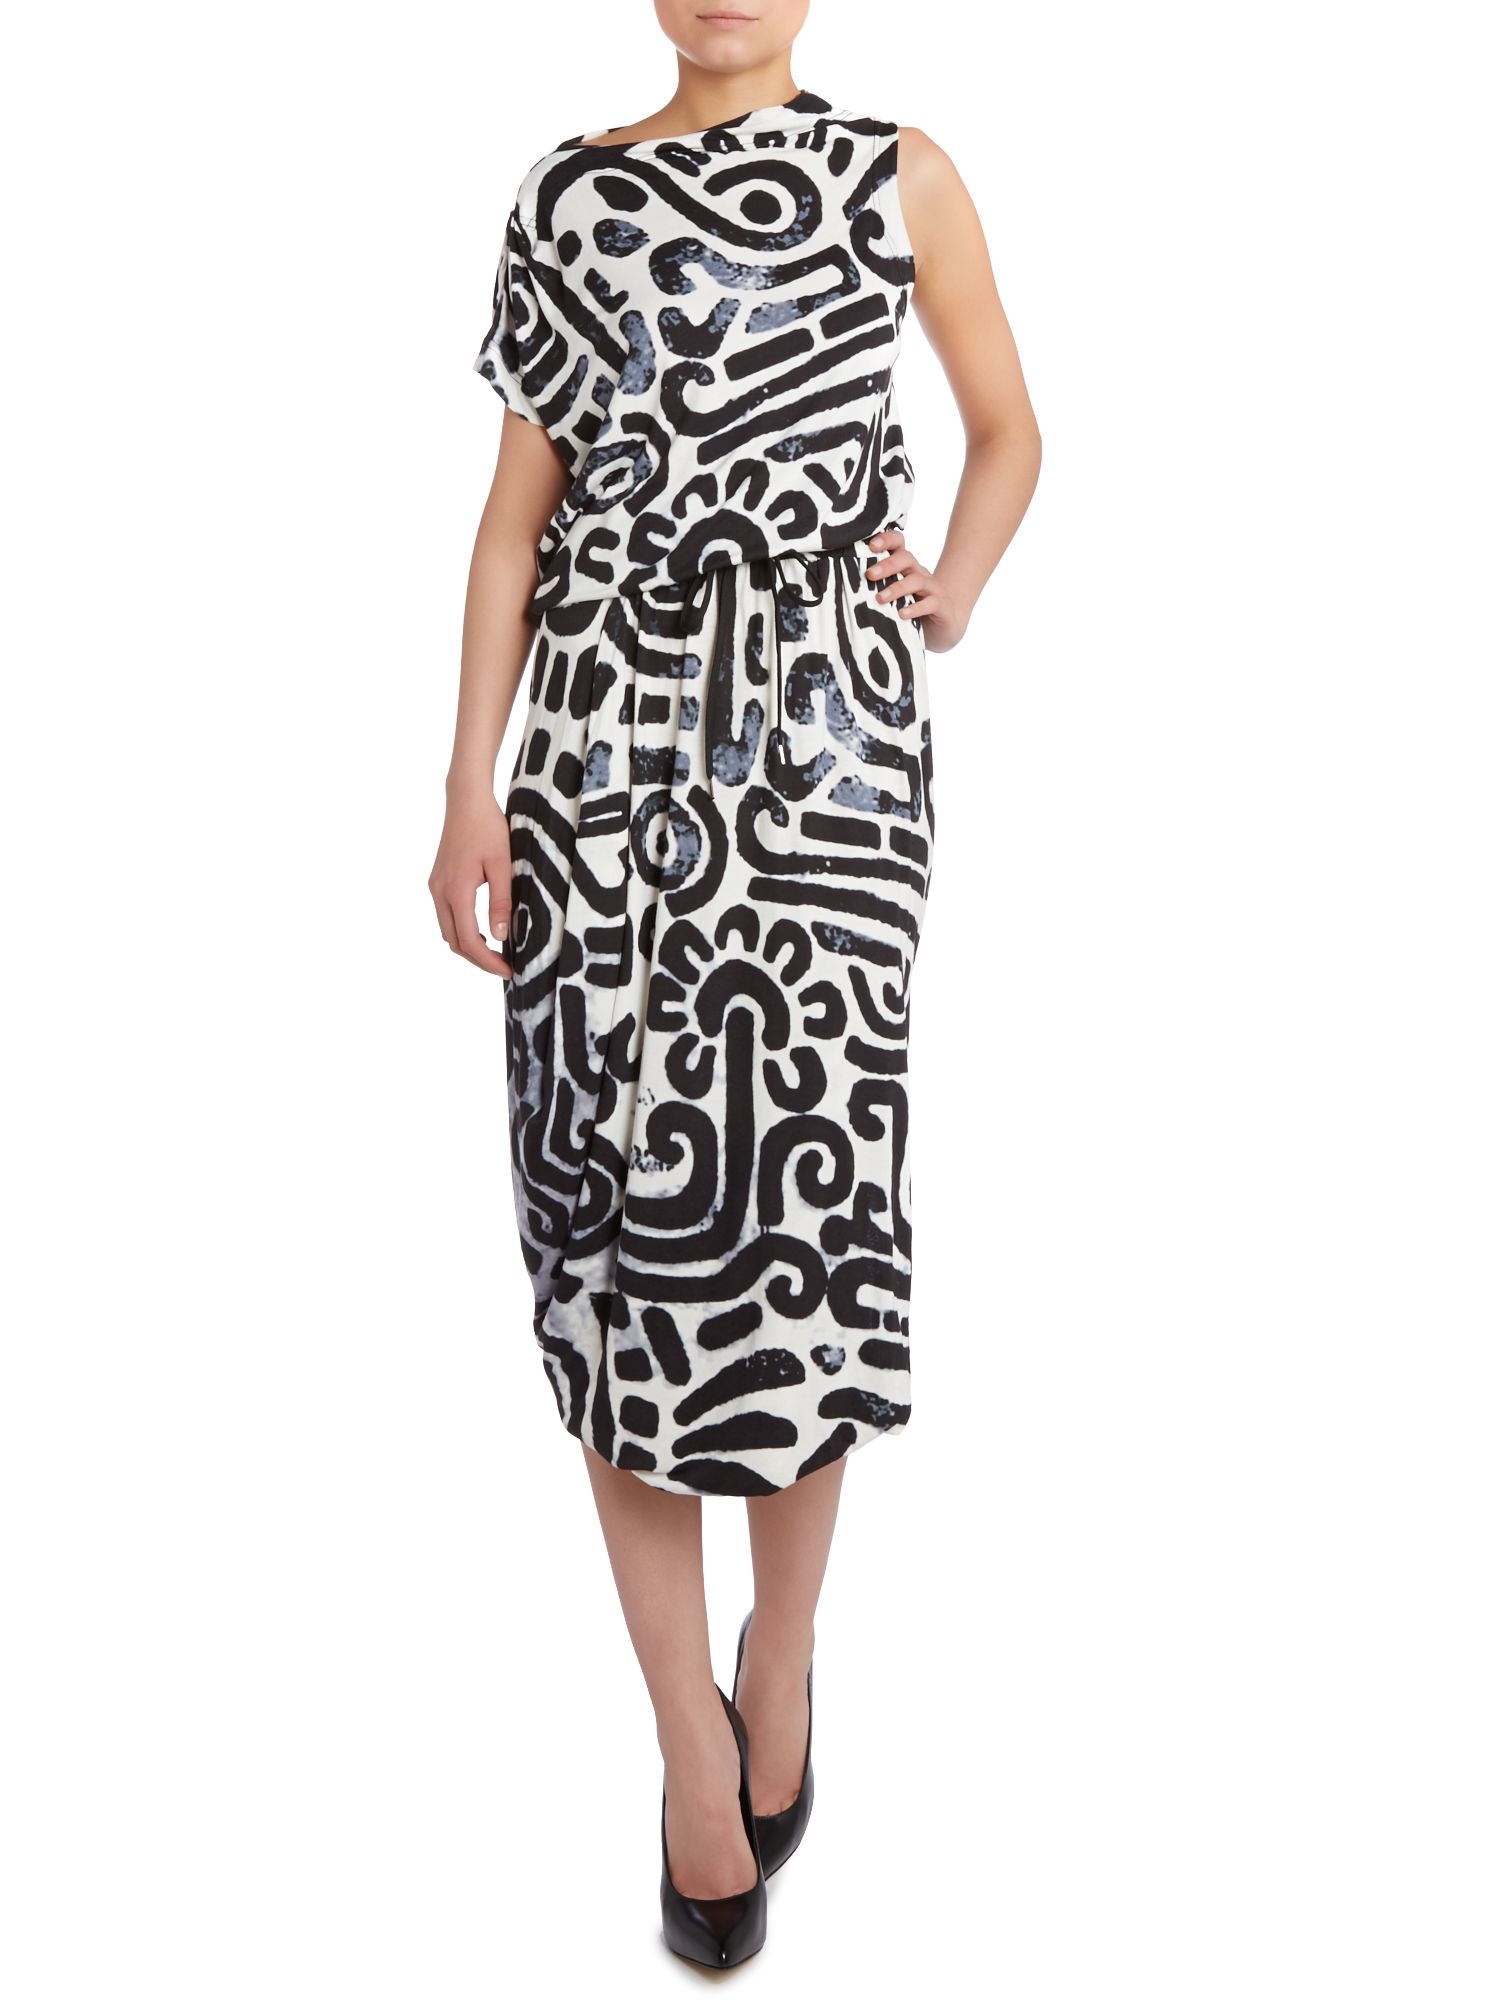 Quest drape print dress